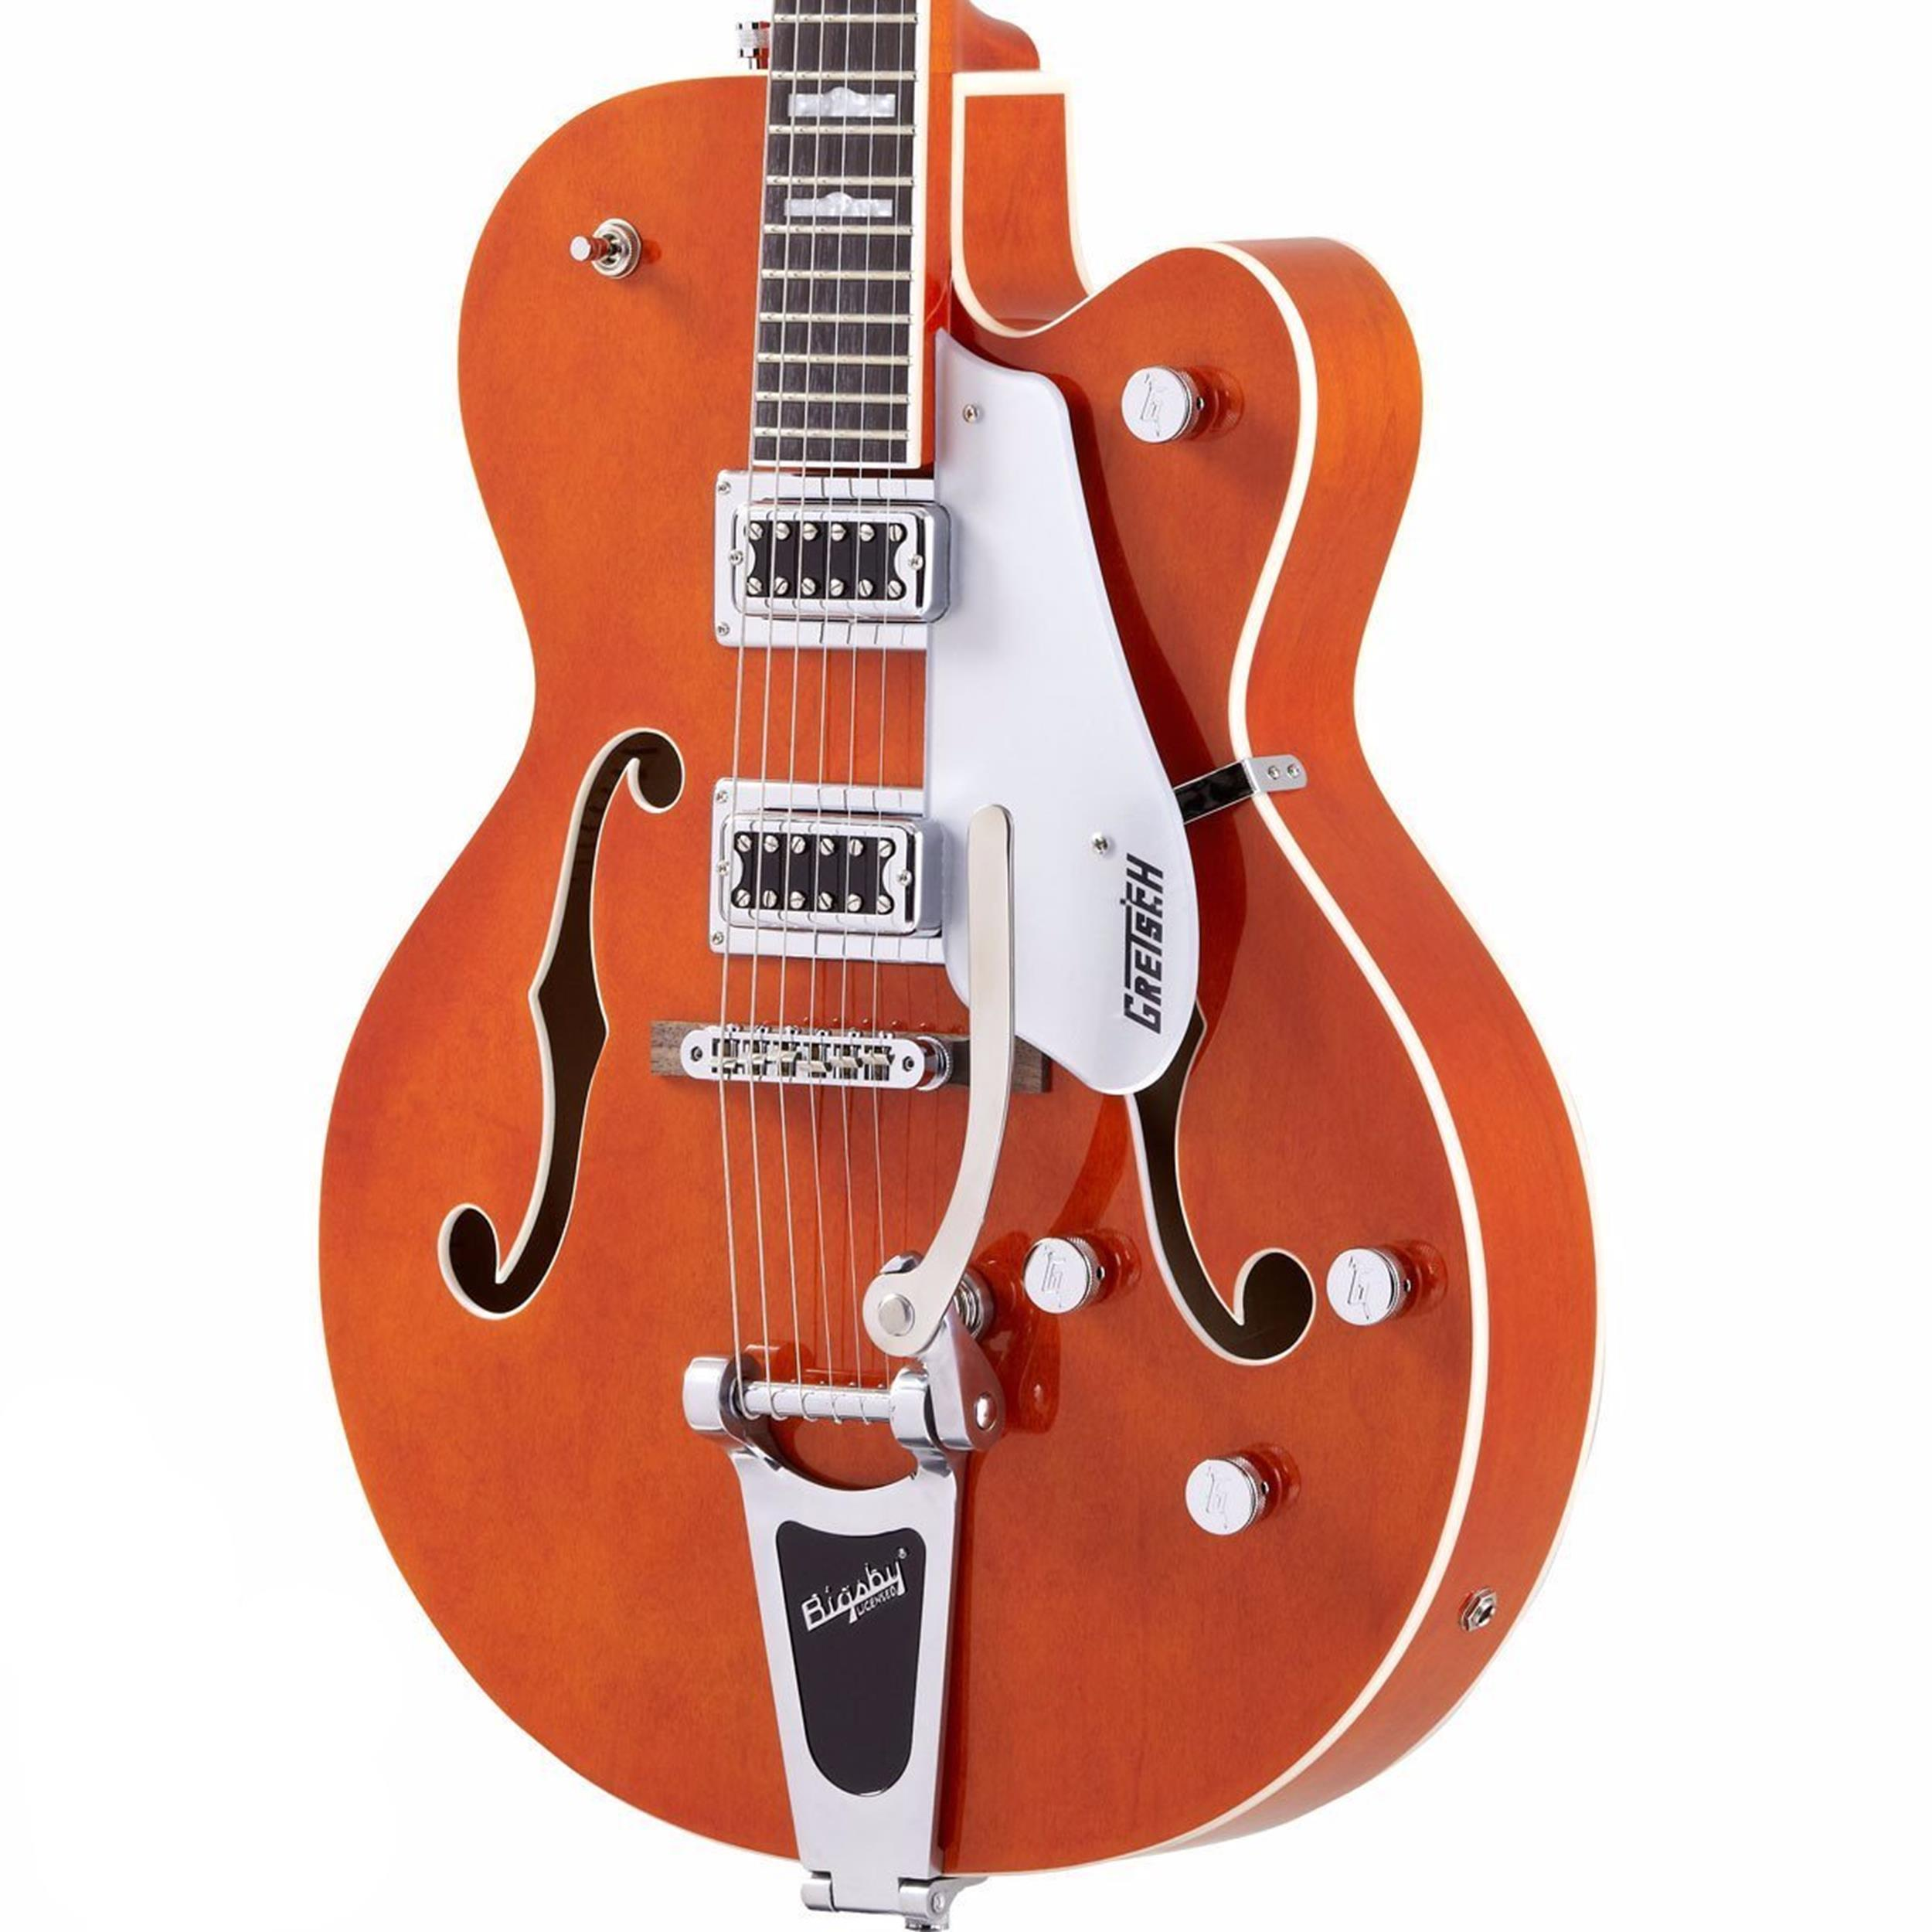 GRETSCH G5420T ELECTROMATIC HOLLOWBODY ORANGE STAIN - 2506011512